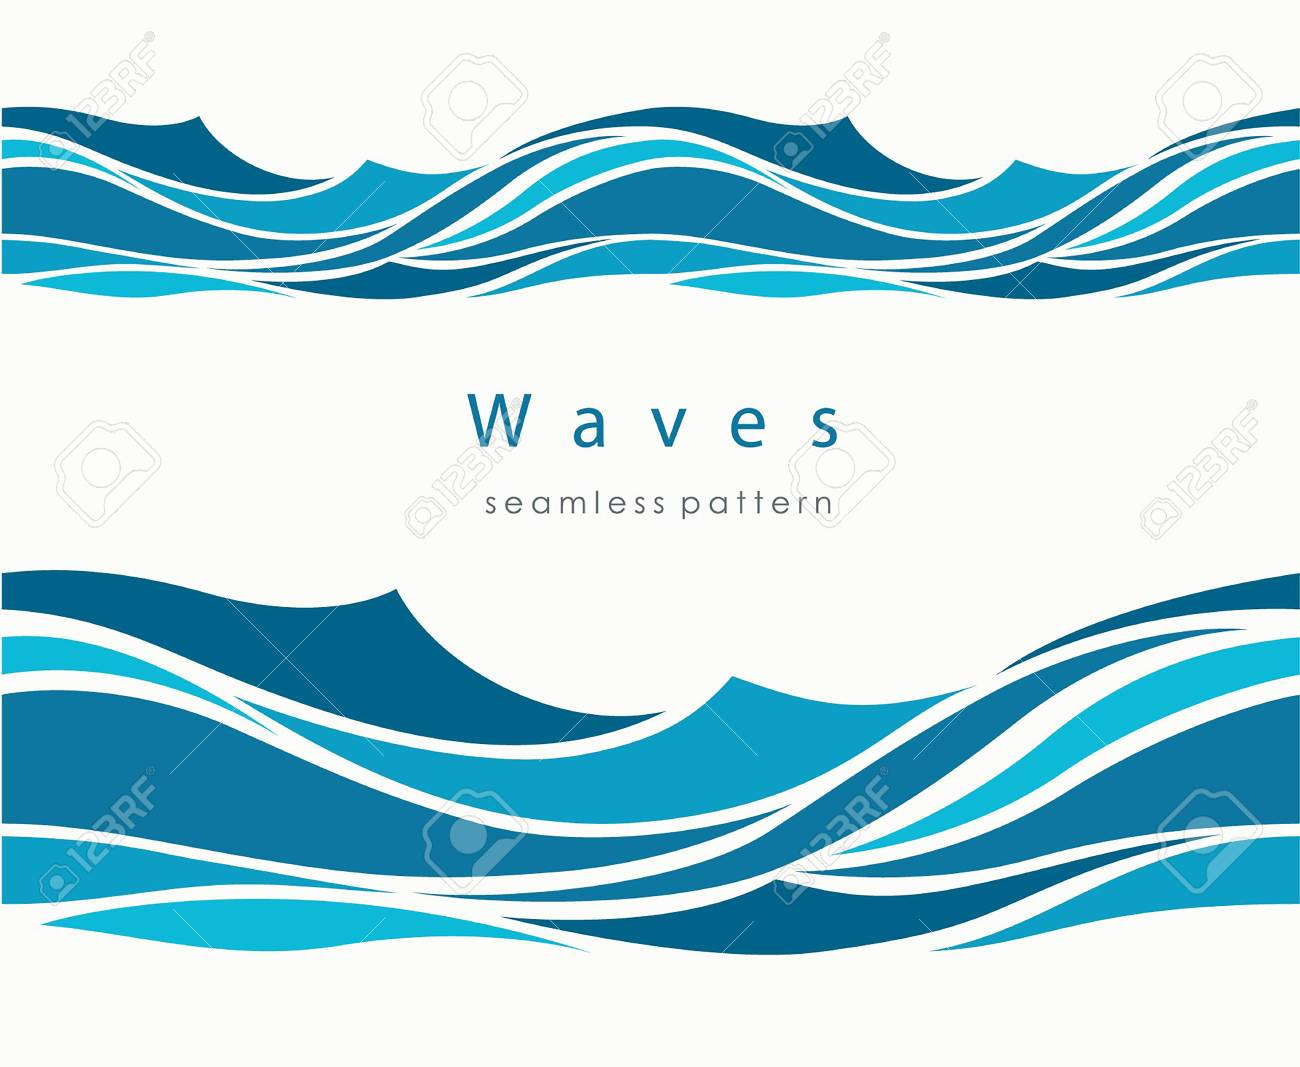 Marine seamless pattern with stylized waves on a light background. Blue water Sea Wave abstract vector background. - 126209347